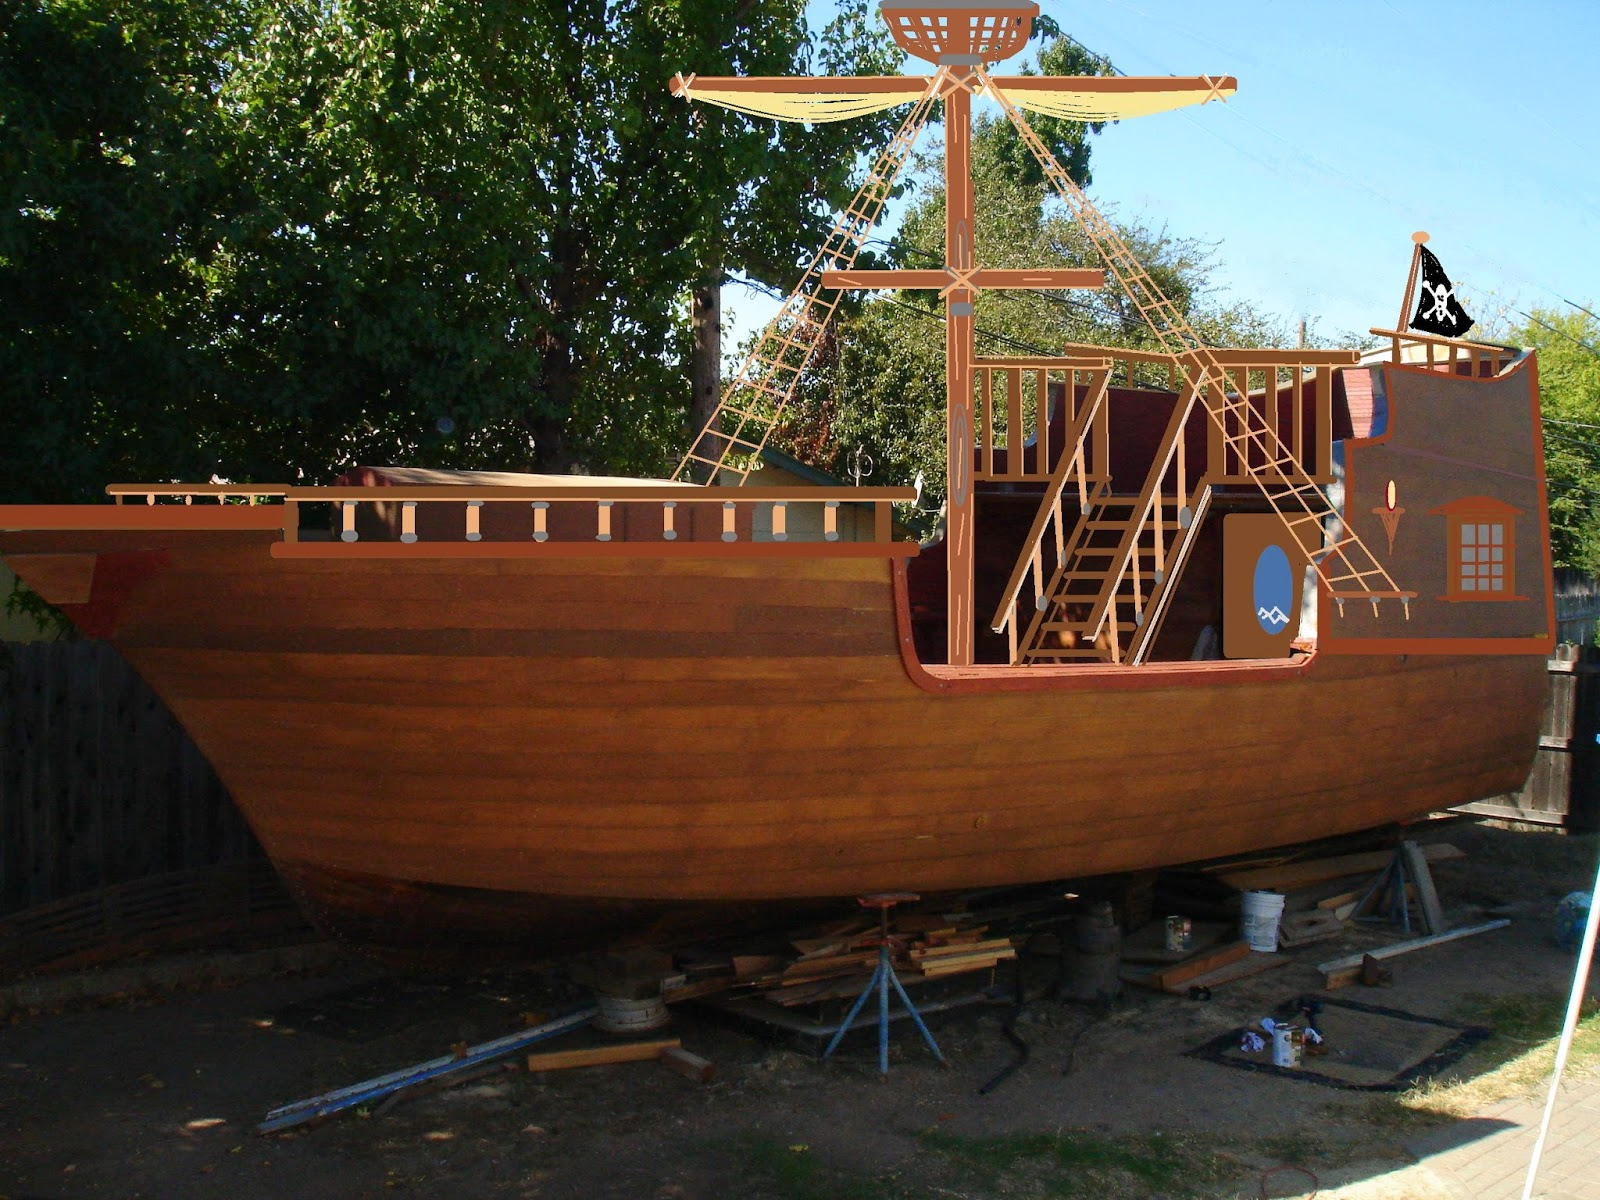 Pirate Ship Playhouse Project